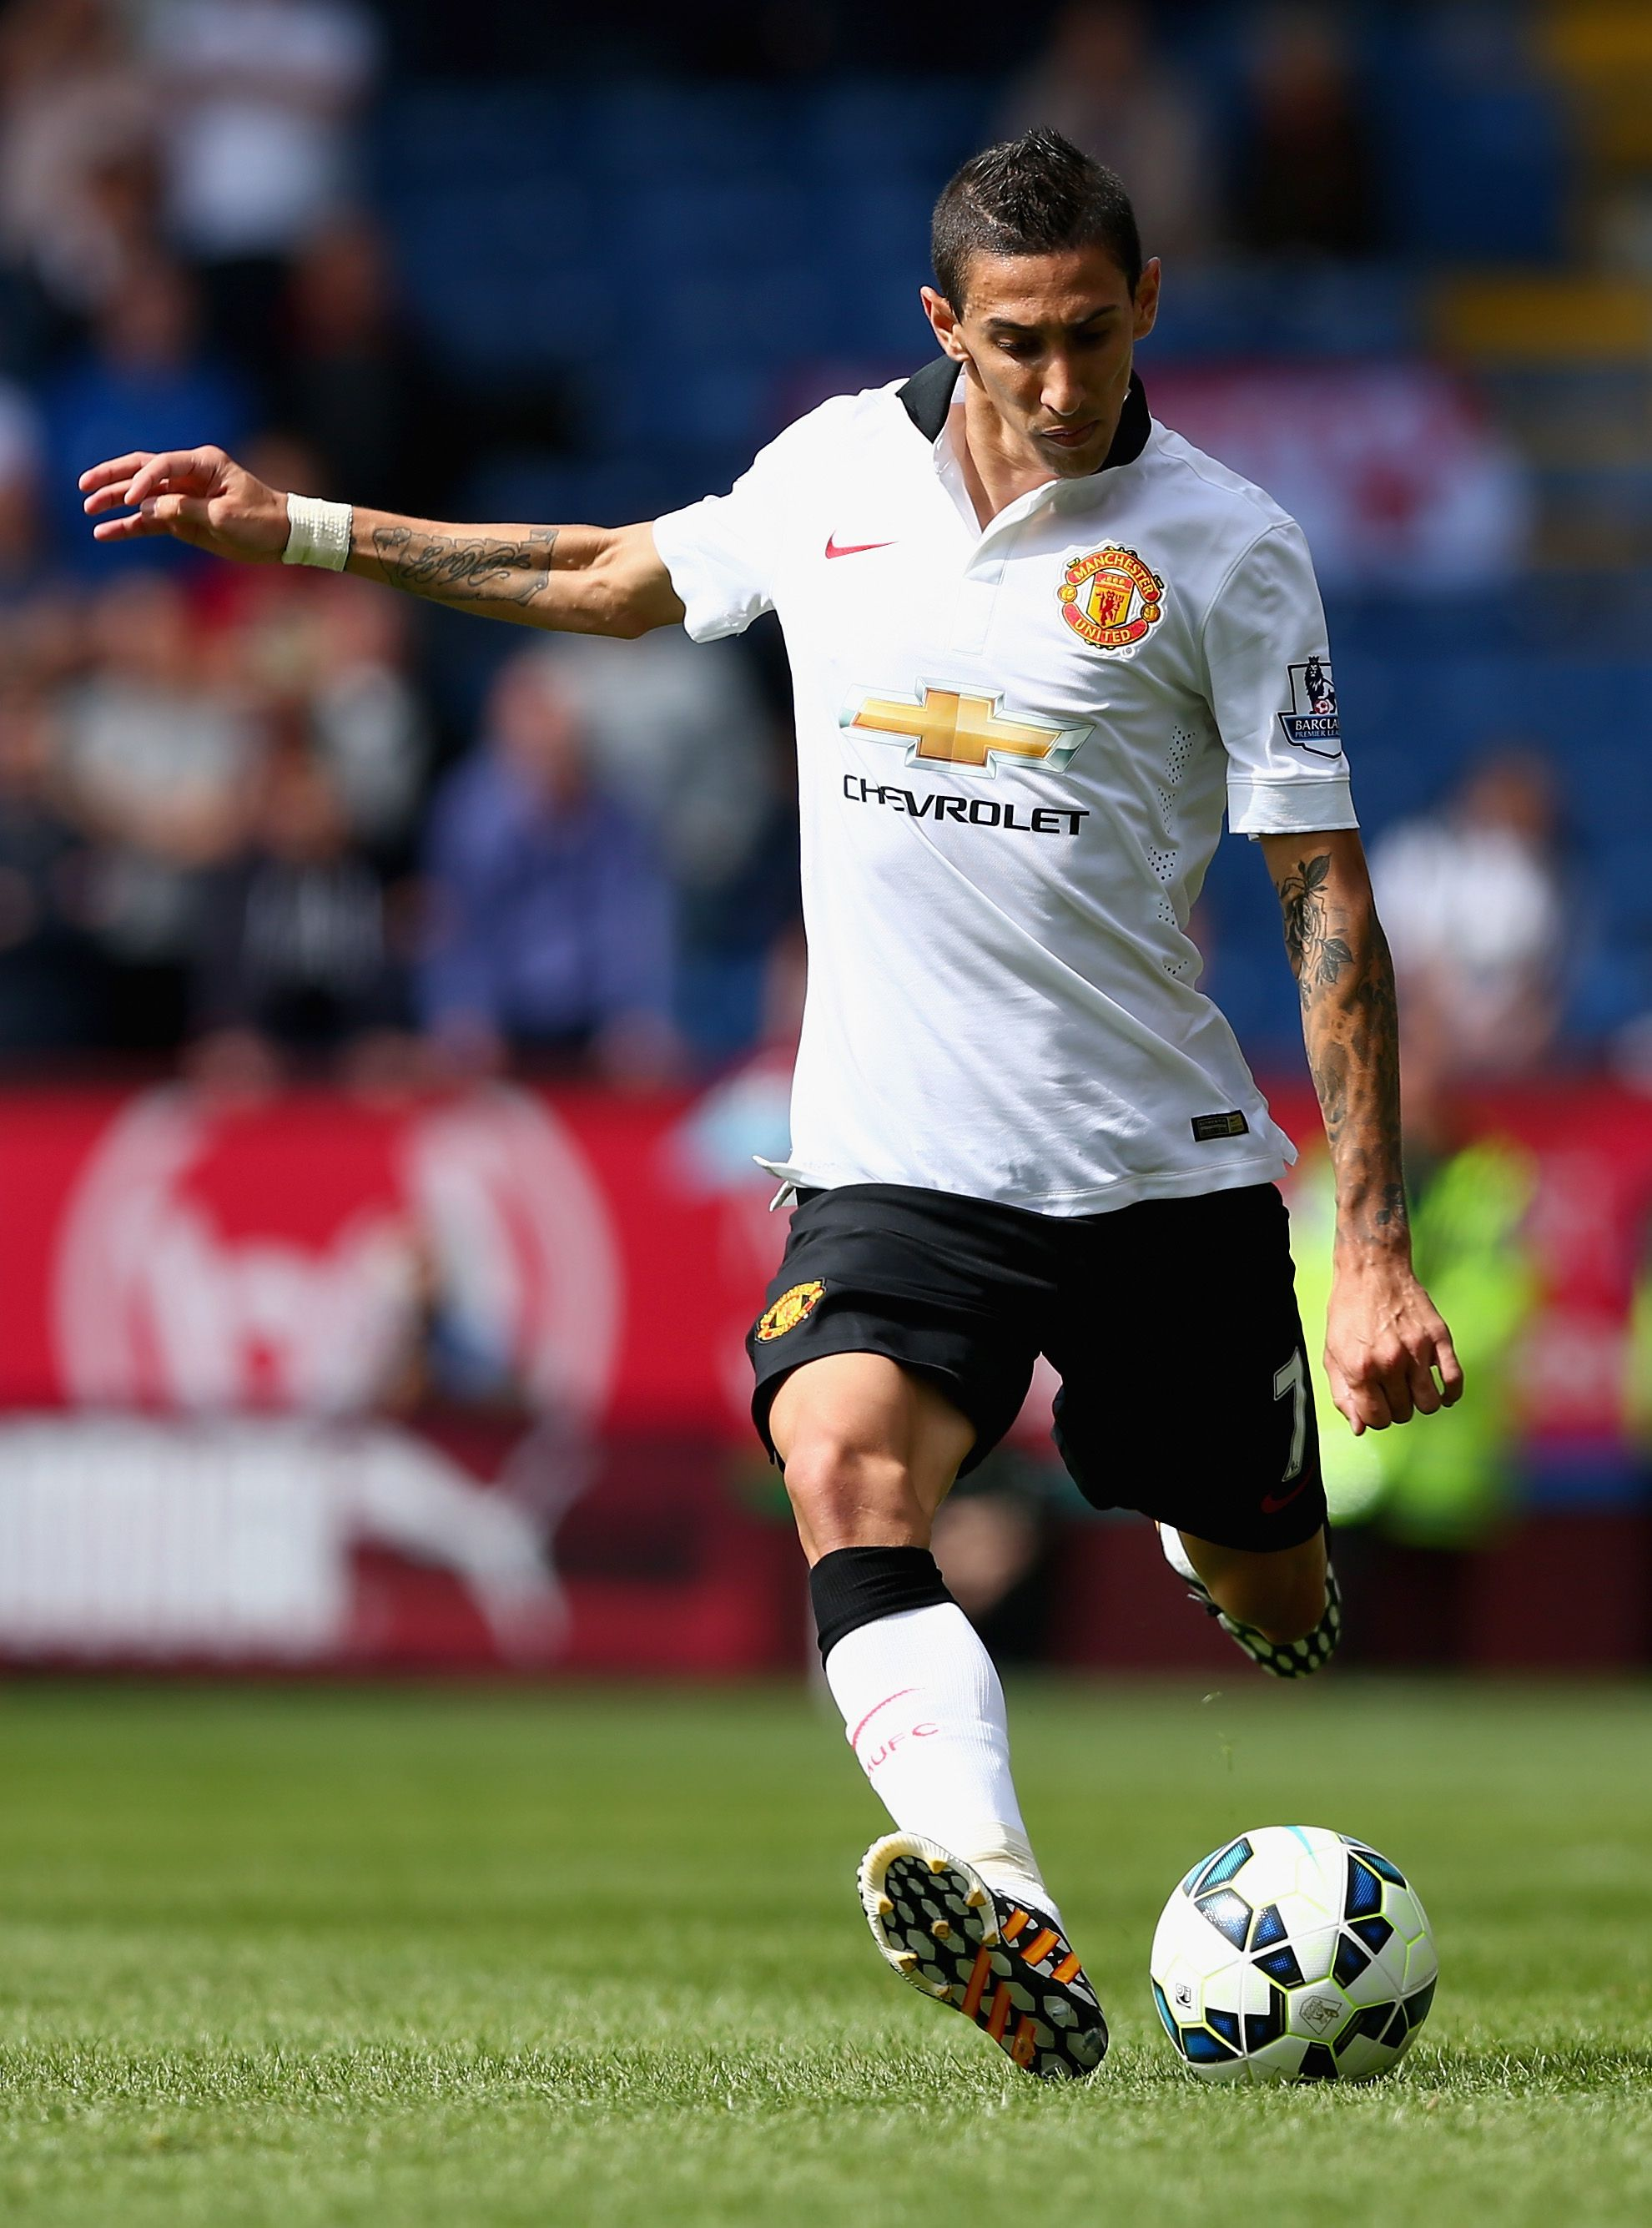 Angel Di Maria made his manutd debut in the white away